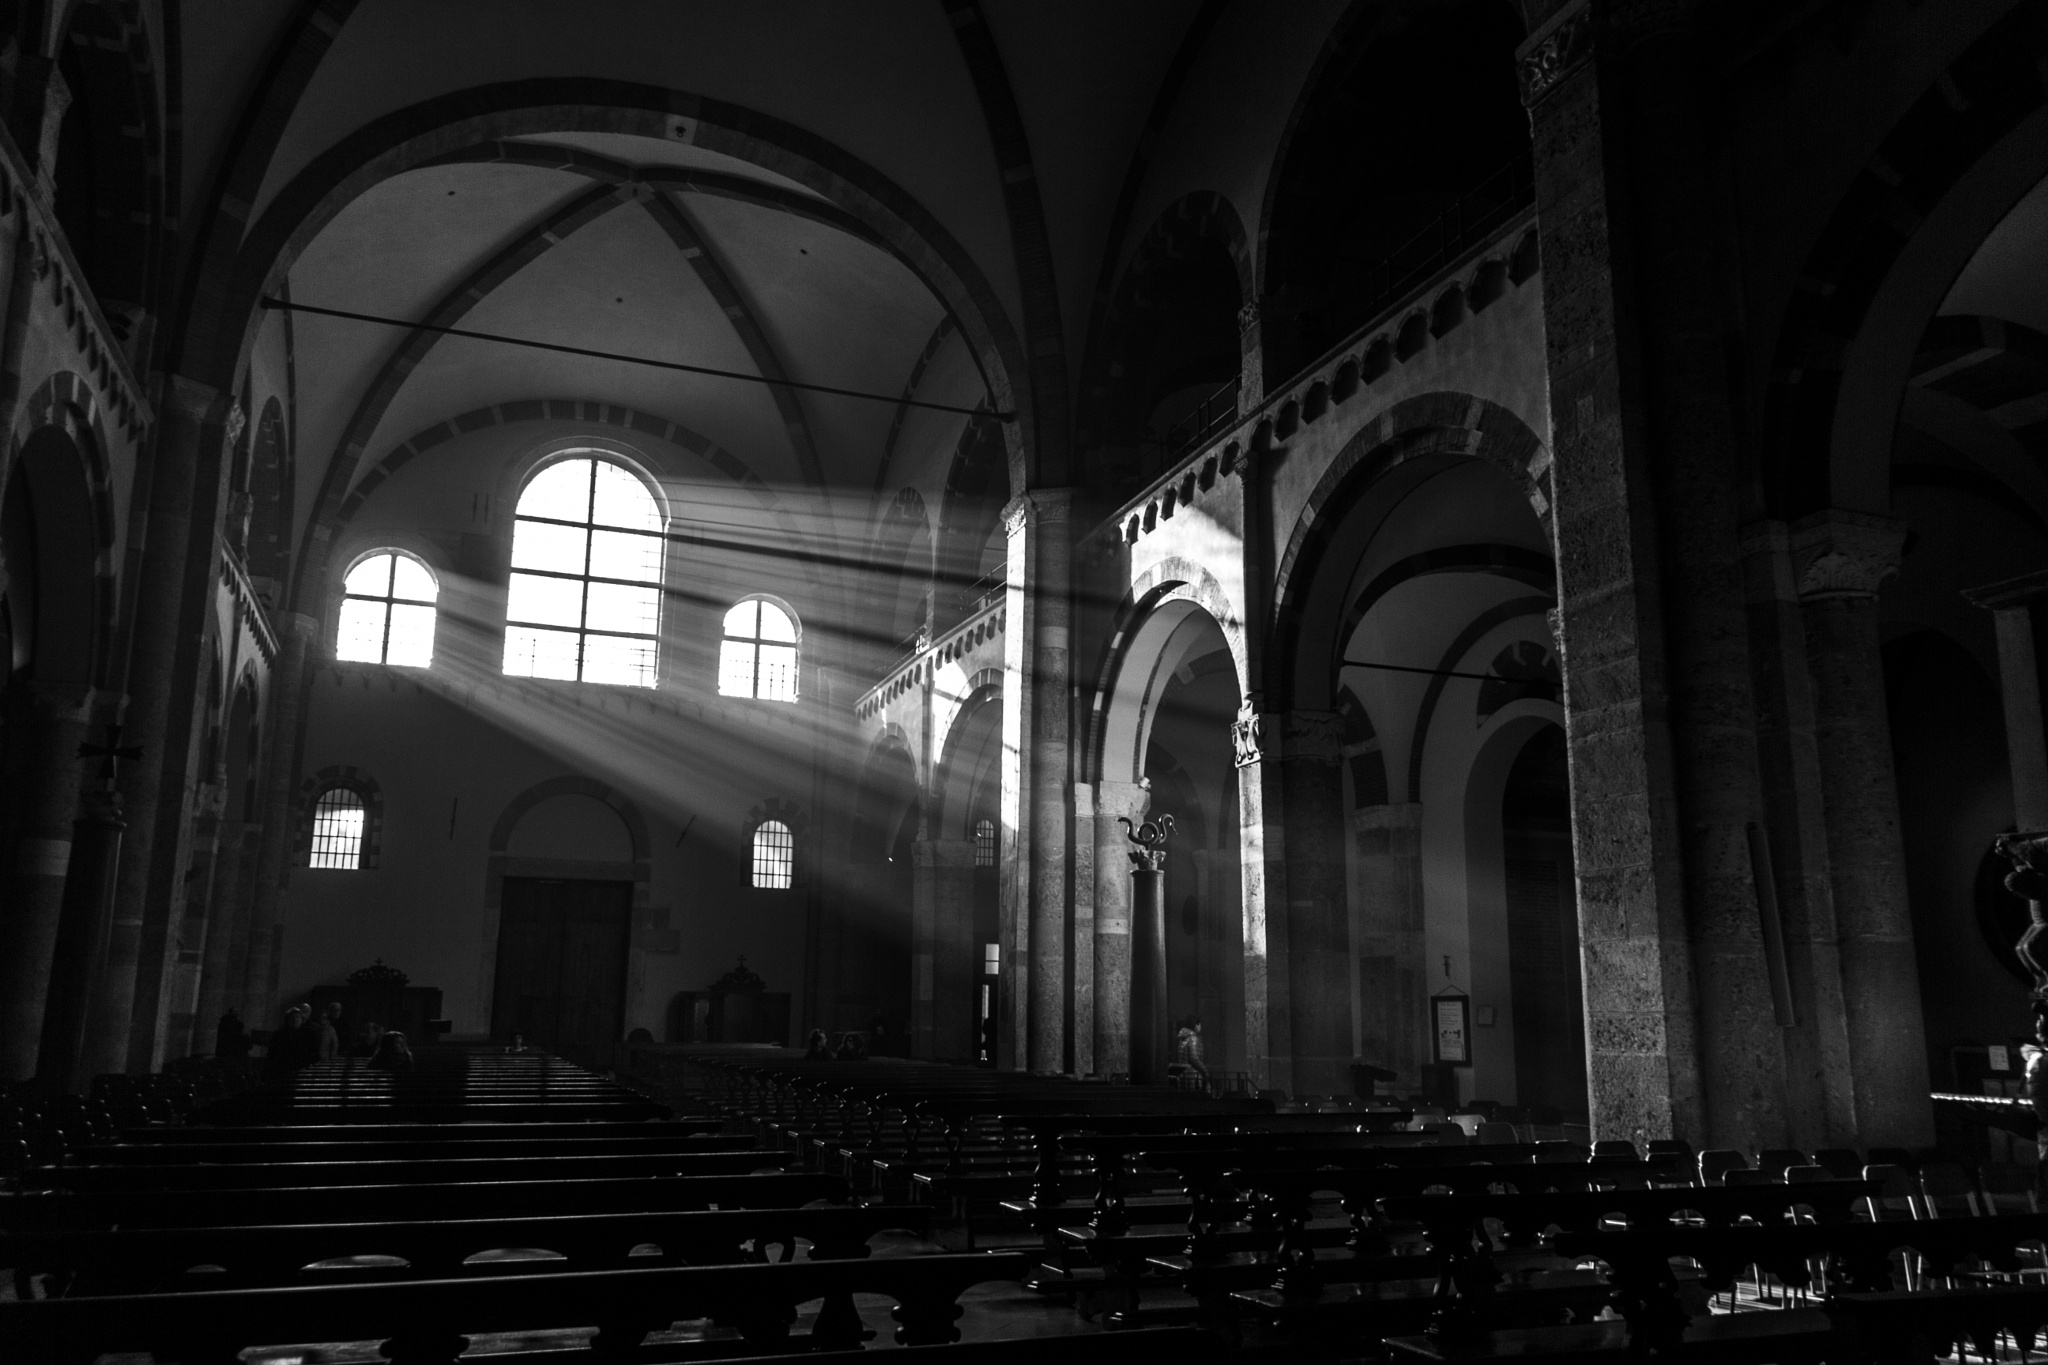 Milan, Basilica di Sant'Ambrogio - 6603 by Storvandre Photography